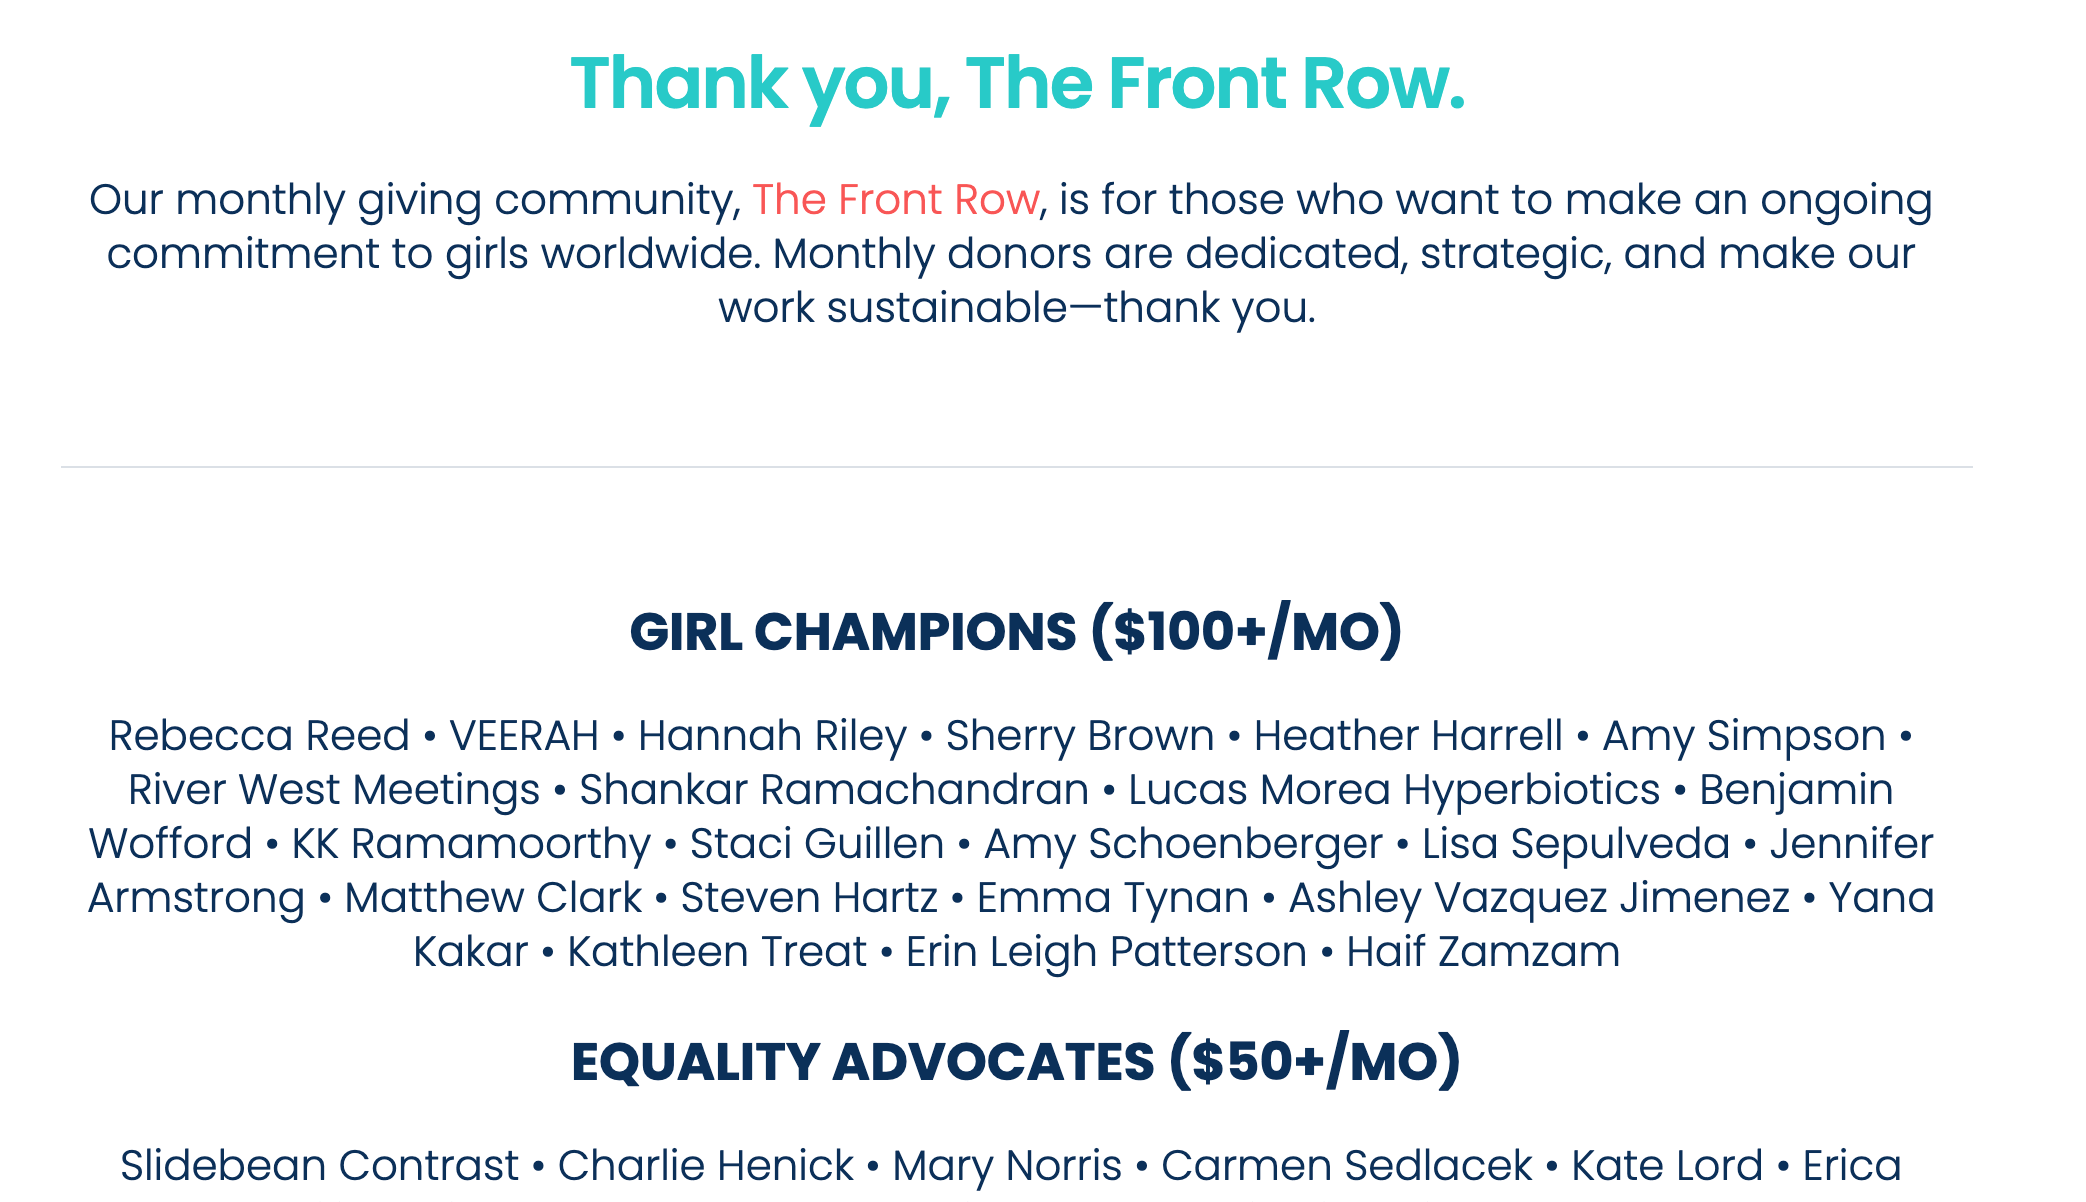 Screenshot showing donor level names for The Front Row monthly giving program